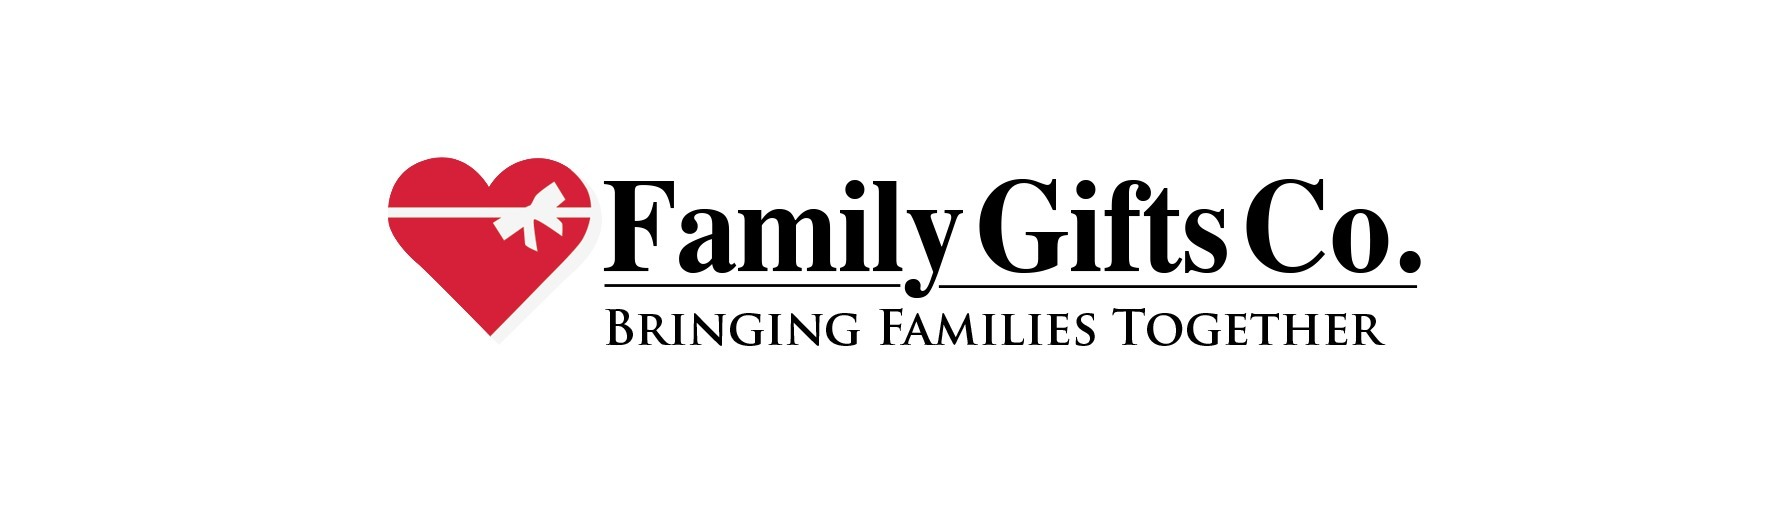 Family Gifts Co. (@familygiftsco) Cover Image